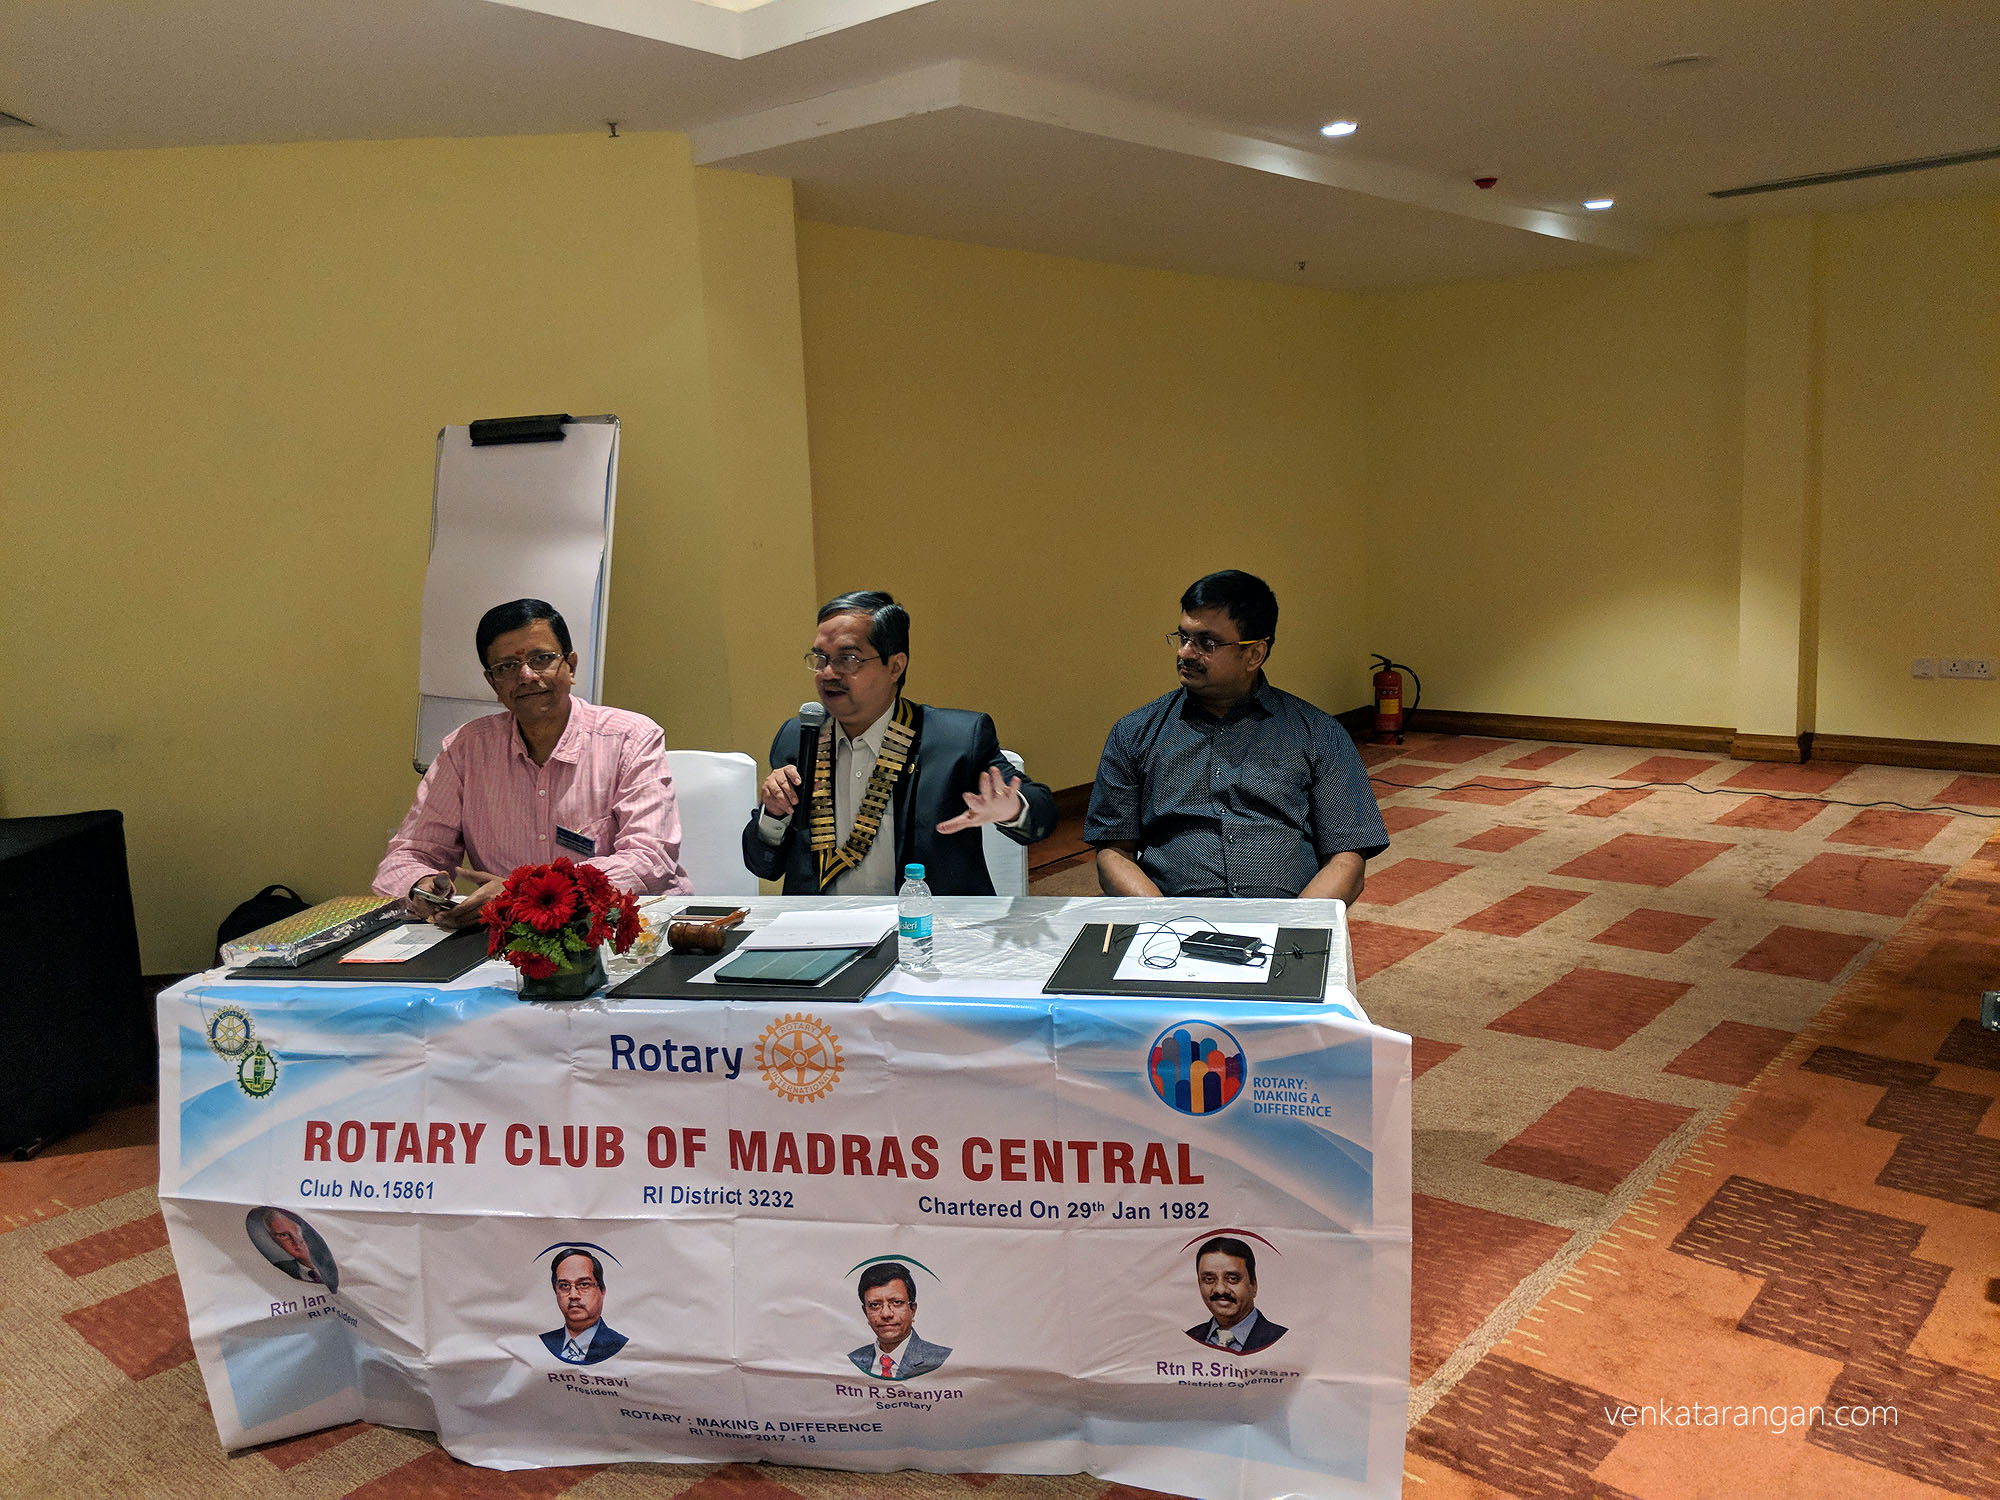 Rotary Club of Madras, Central